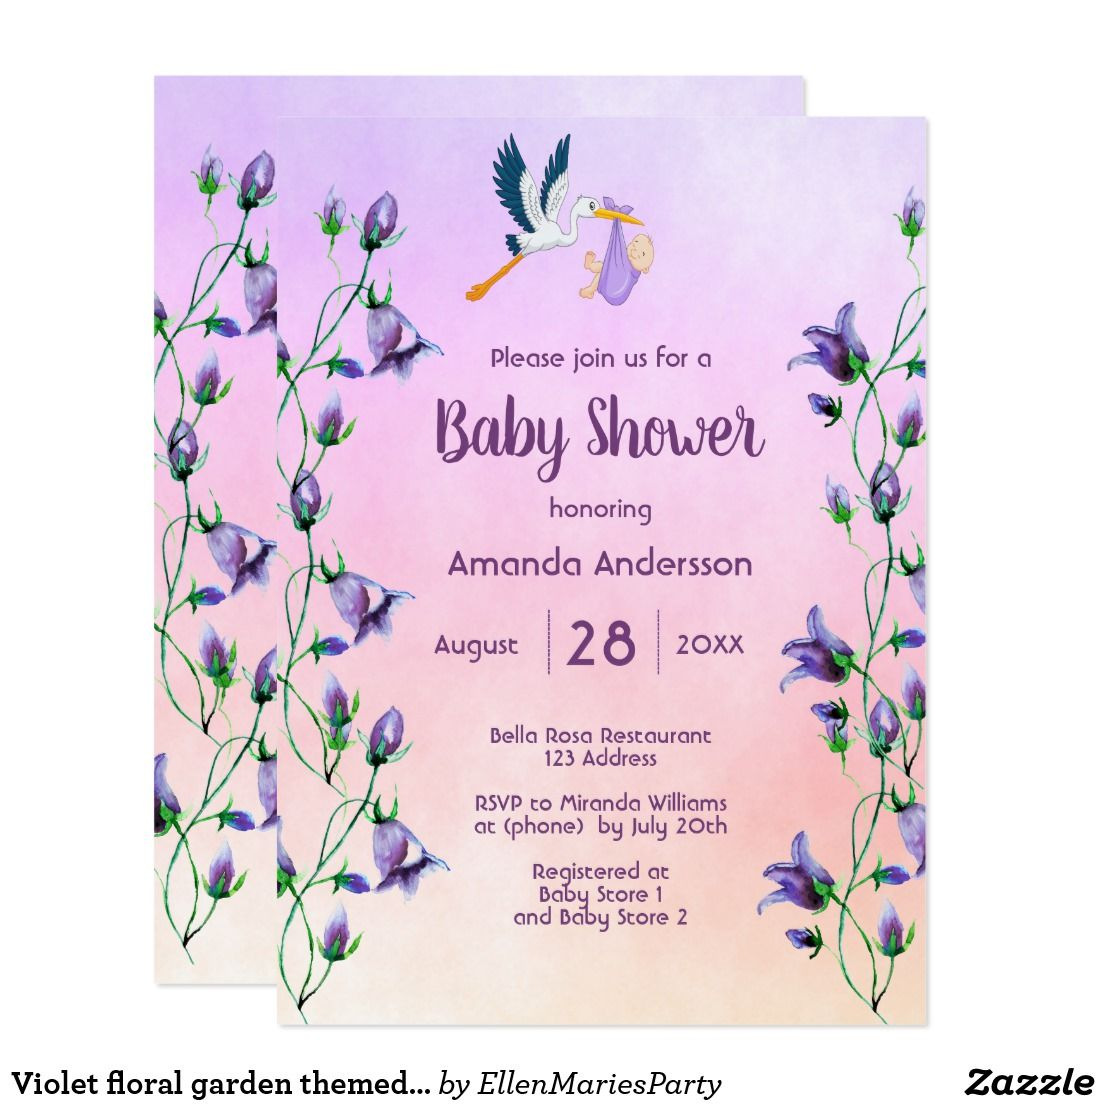 Baby Shower Invitation Letter Pleasing Violet Floral Garden Themed Baby Shower Invitation  Babies And Baby .